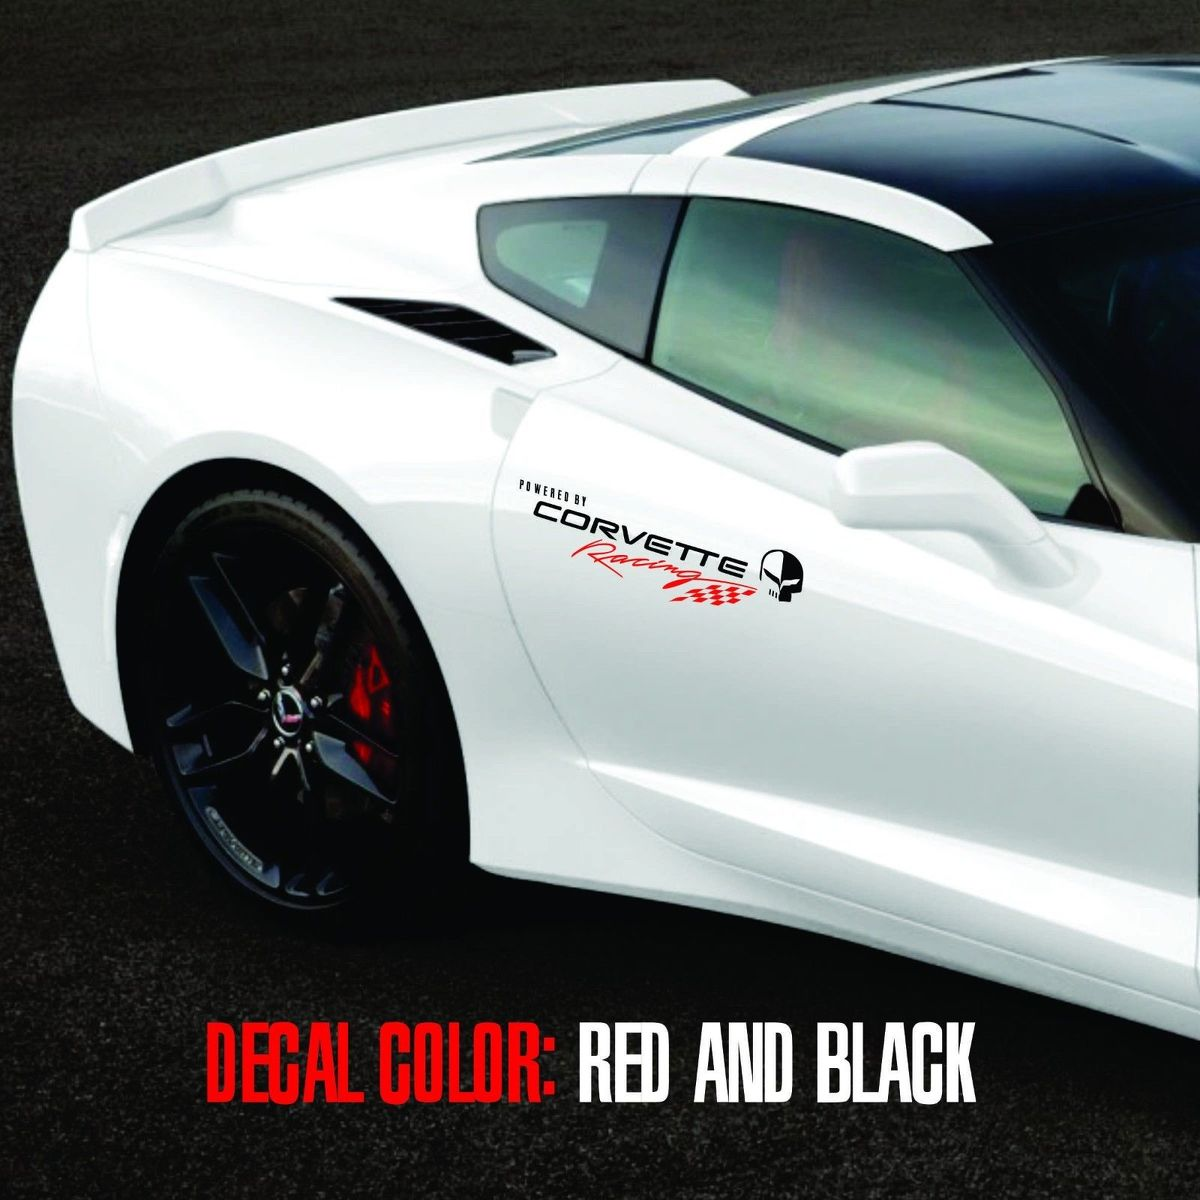 Corvette Racing 1 pair logo Vinyl Graphic Decals C3 C4 C5 C6 C7 ZO6 ZR1 Black and Red